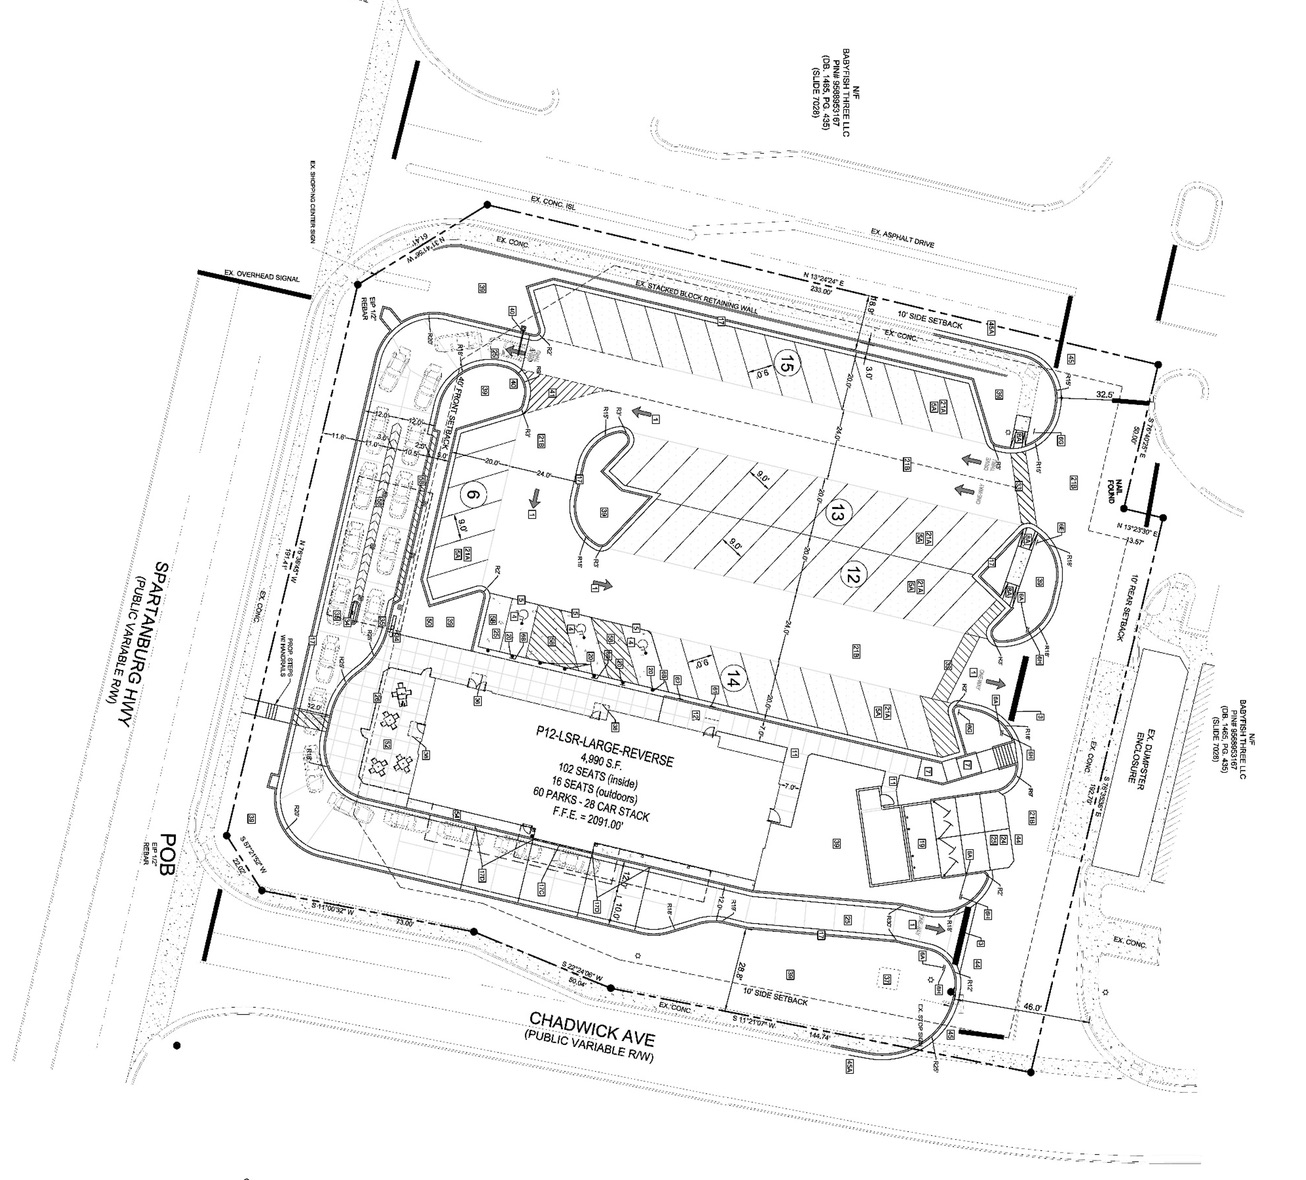 Site plan shows footprint of a new Chick-Fil-A at Chadwick Corners shopping center.